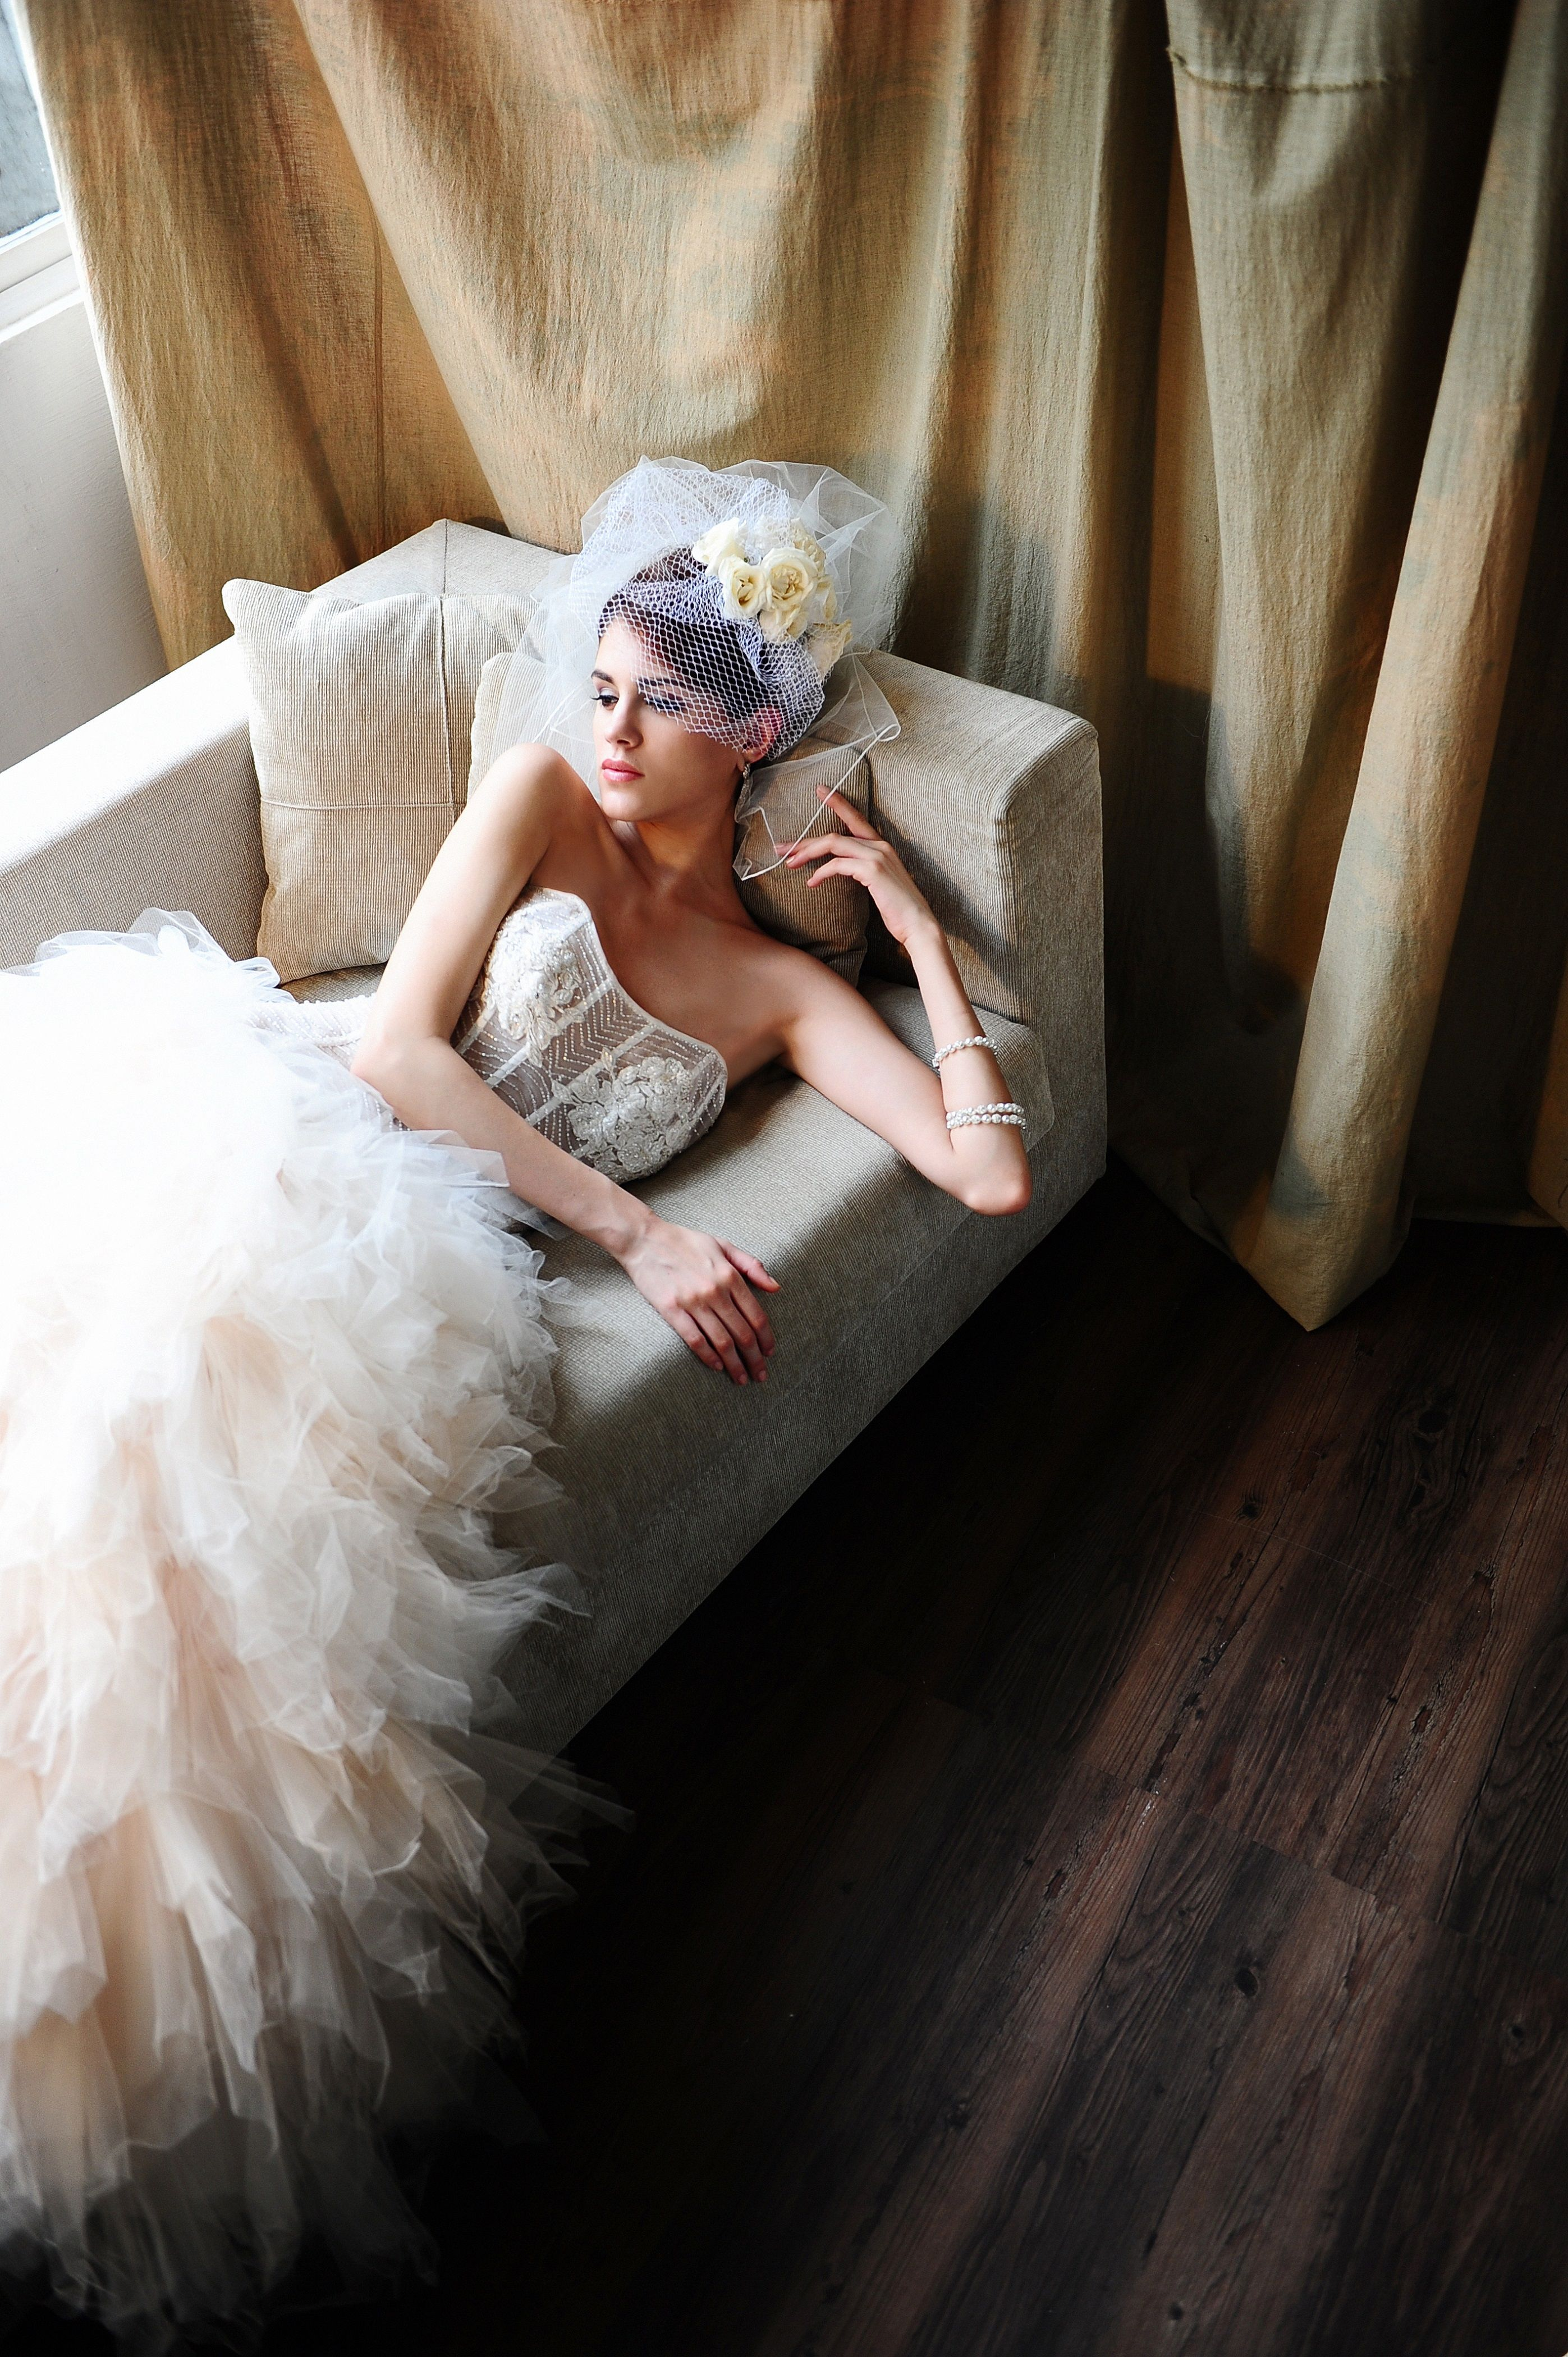 Our beautiful santiago wedding gown words donut do it justice